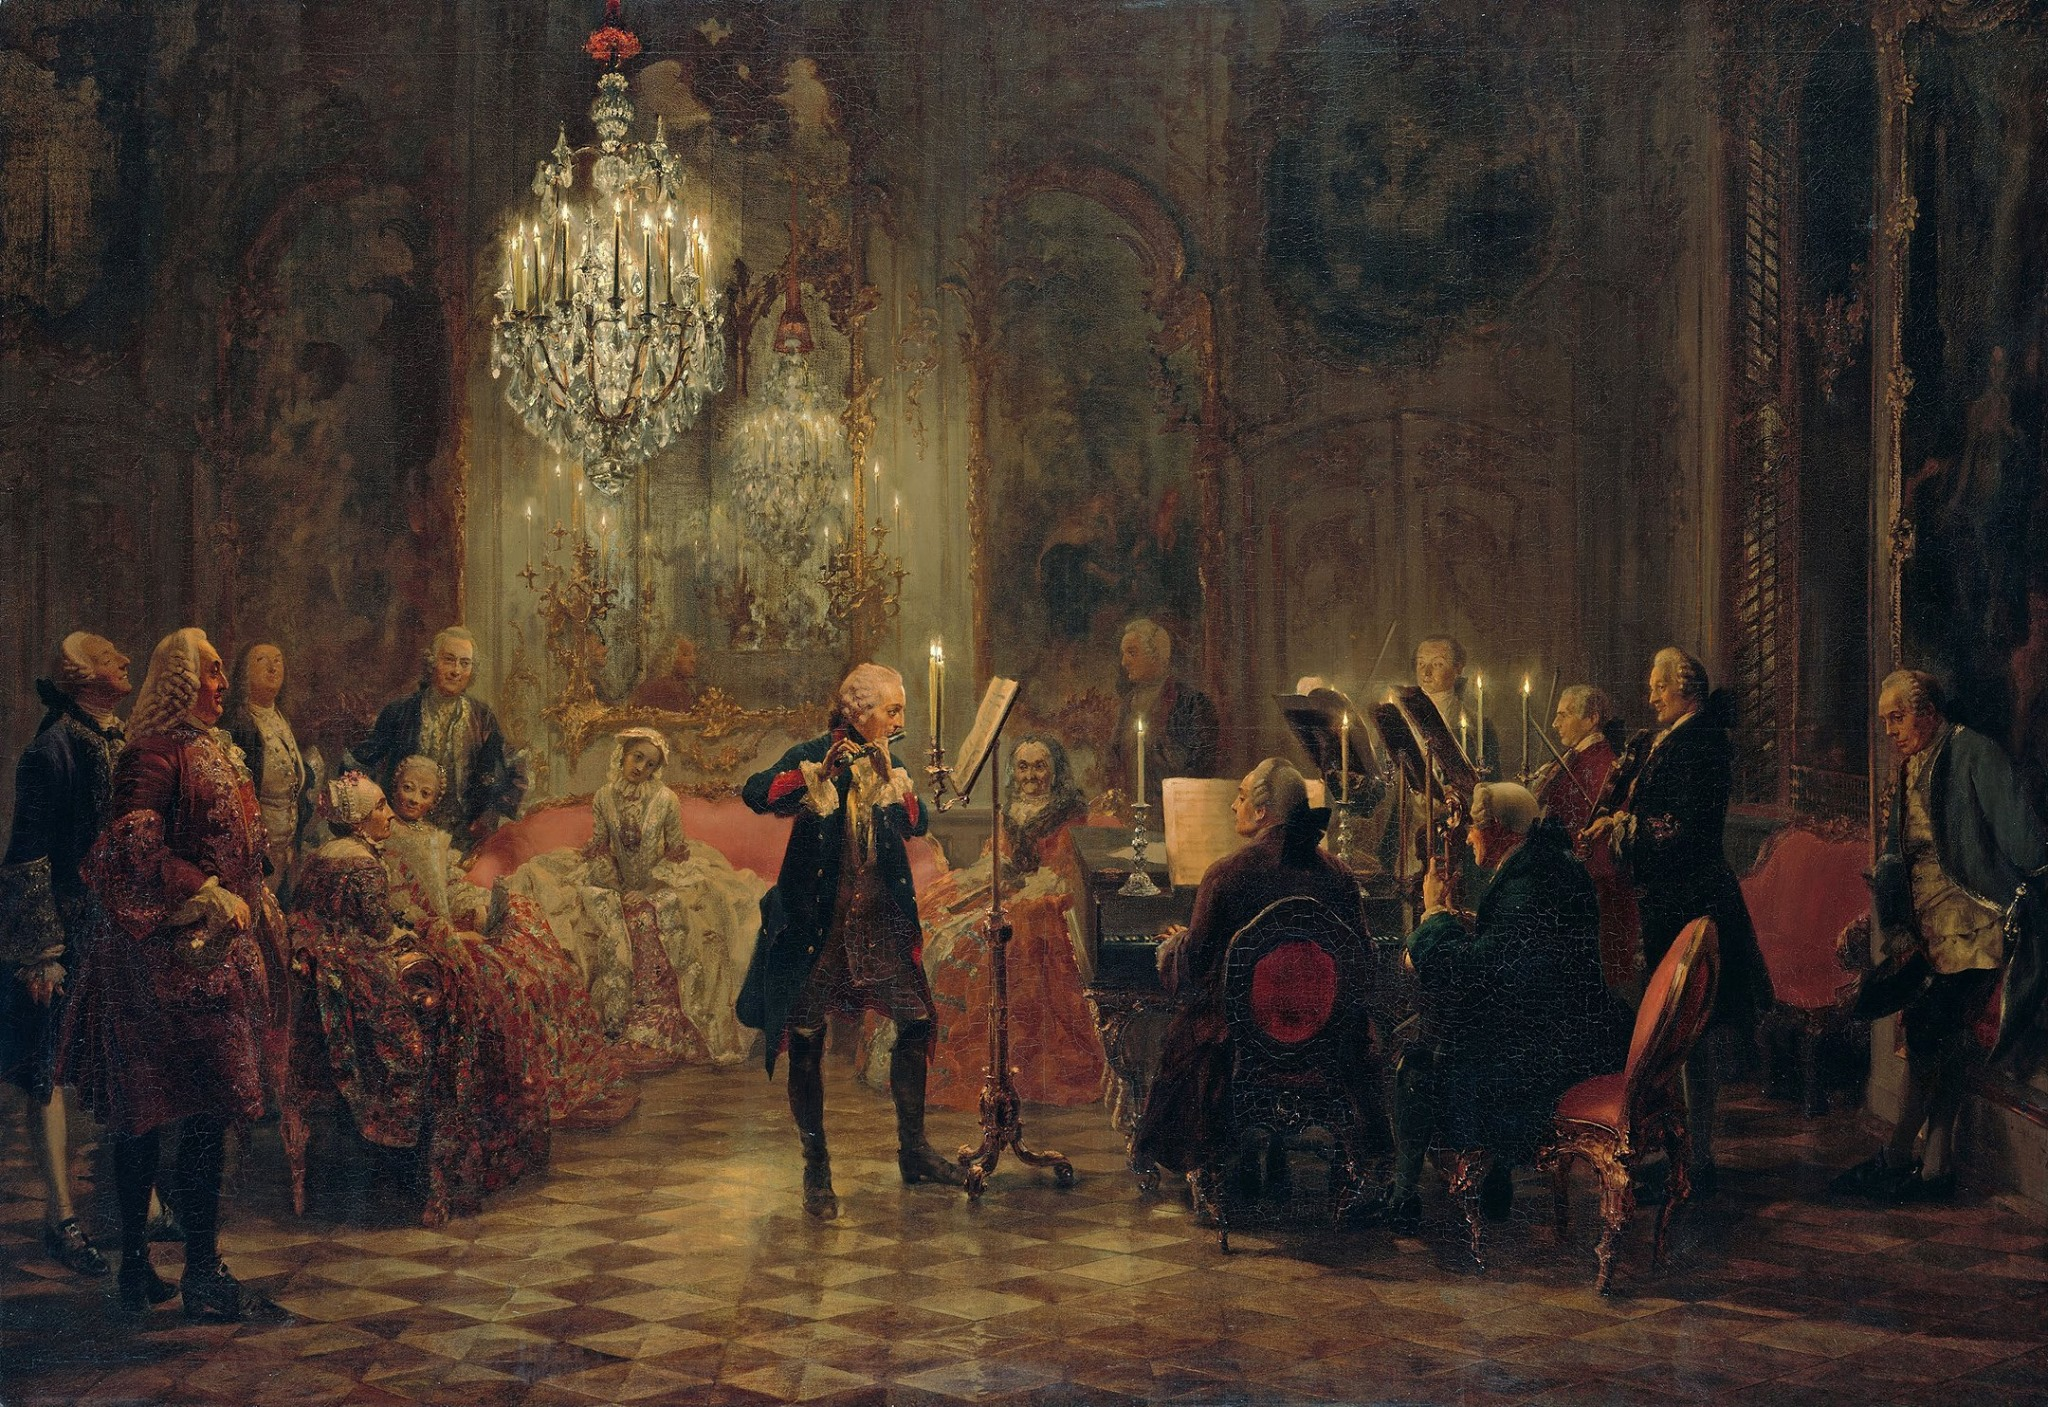 Frederick The Great and CPE Bach JJ Quantz